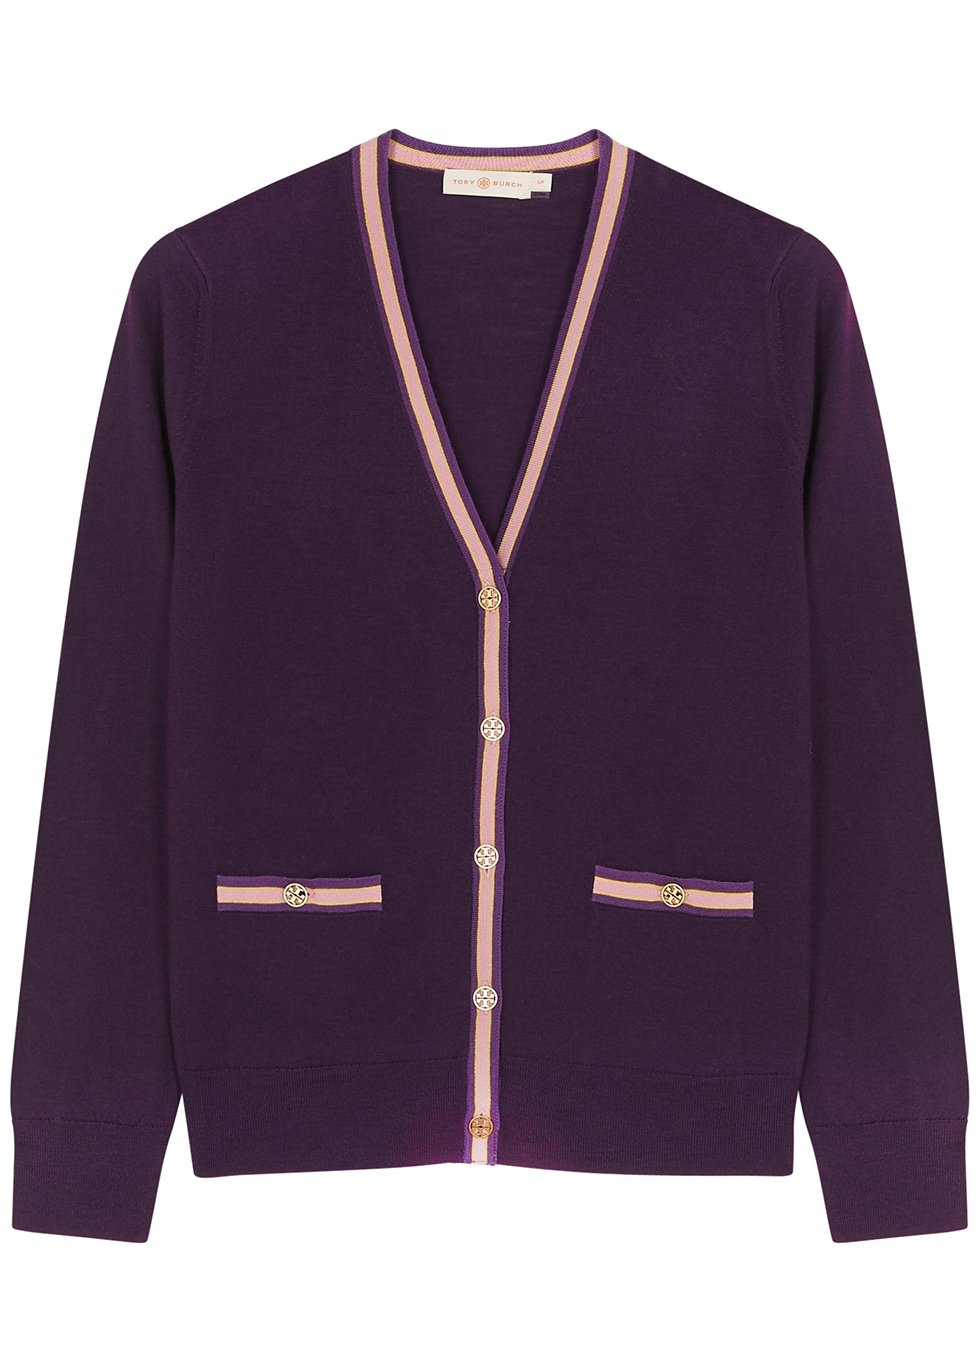 Madeline purple merino wool cardigan